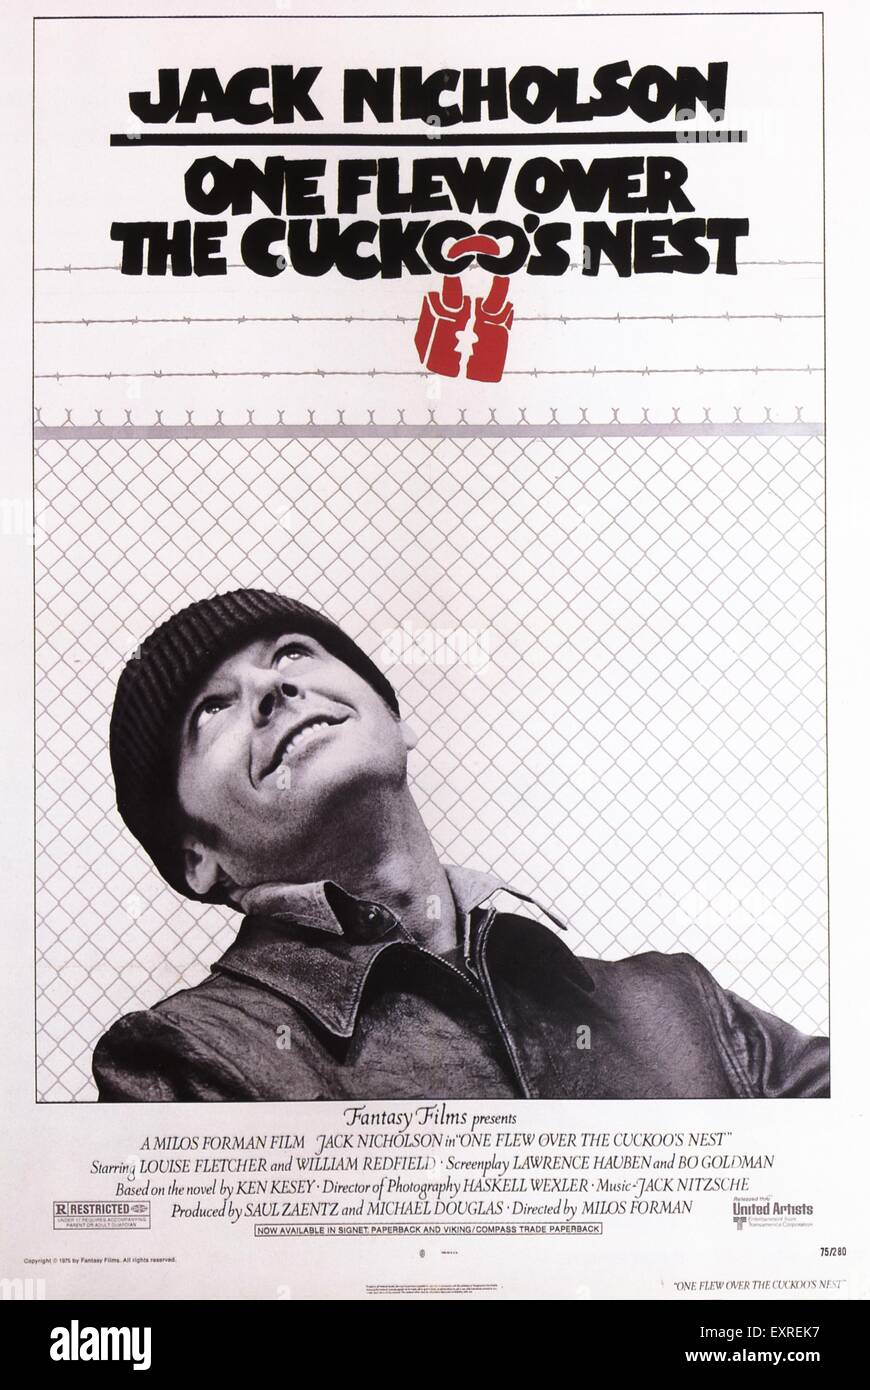 1970s USA One Flew Over The Cuckoo's Nest Film Poster - Stock Image